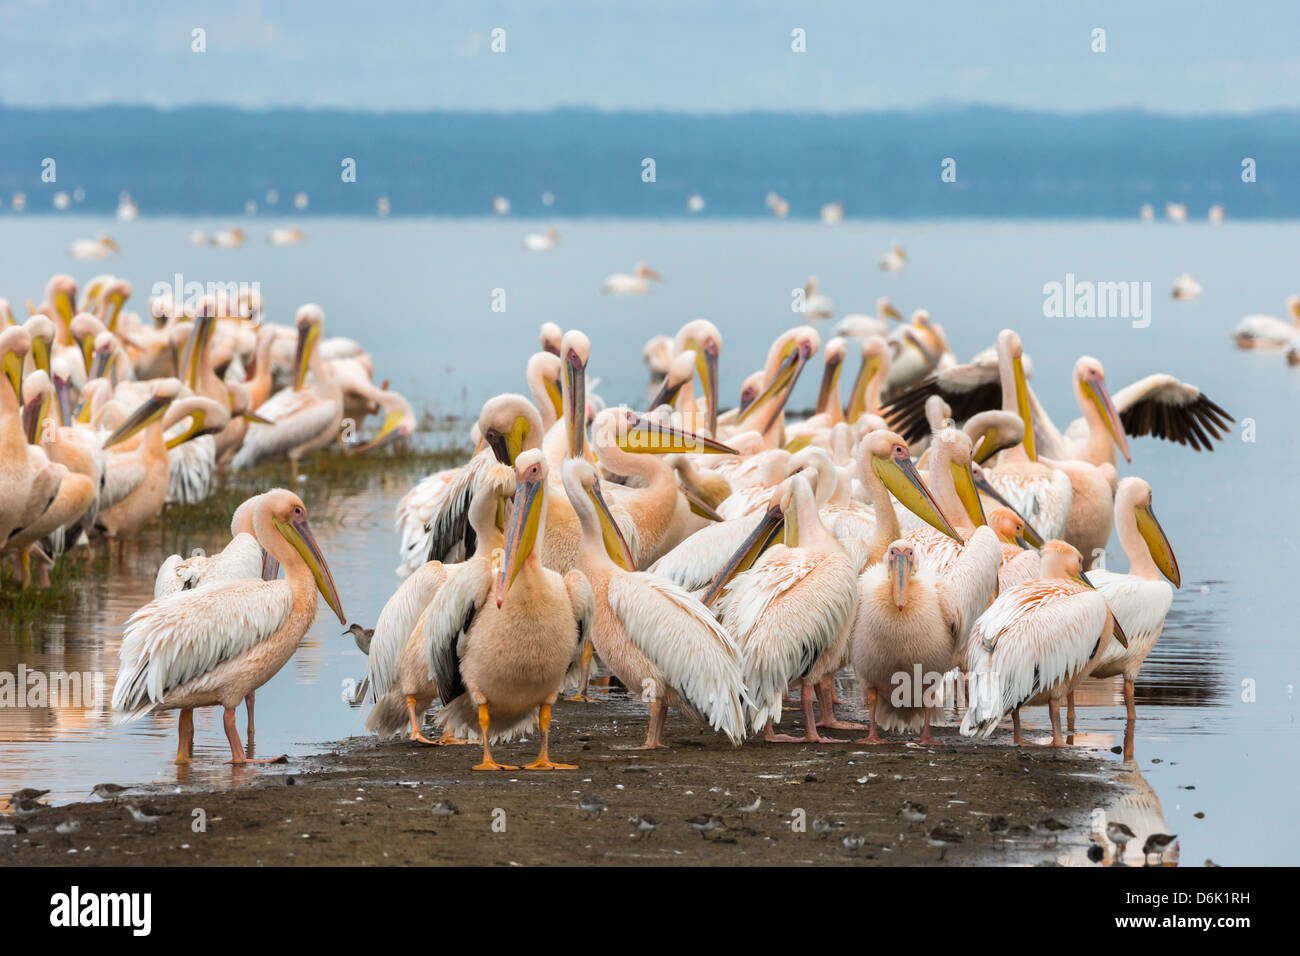 Great white pelicans (Pelecanus onocrotalus), Lake Nakuru National Park, Kenya, East Africa, Africa - Stock Image